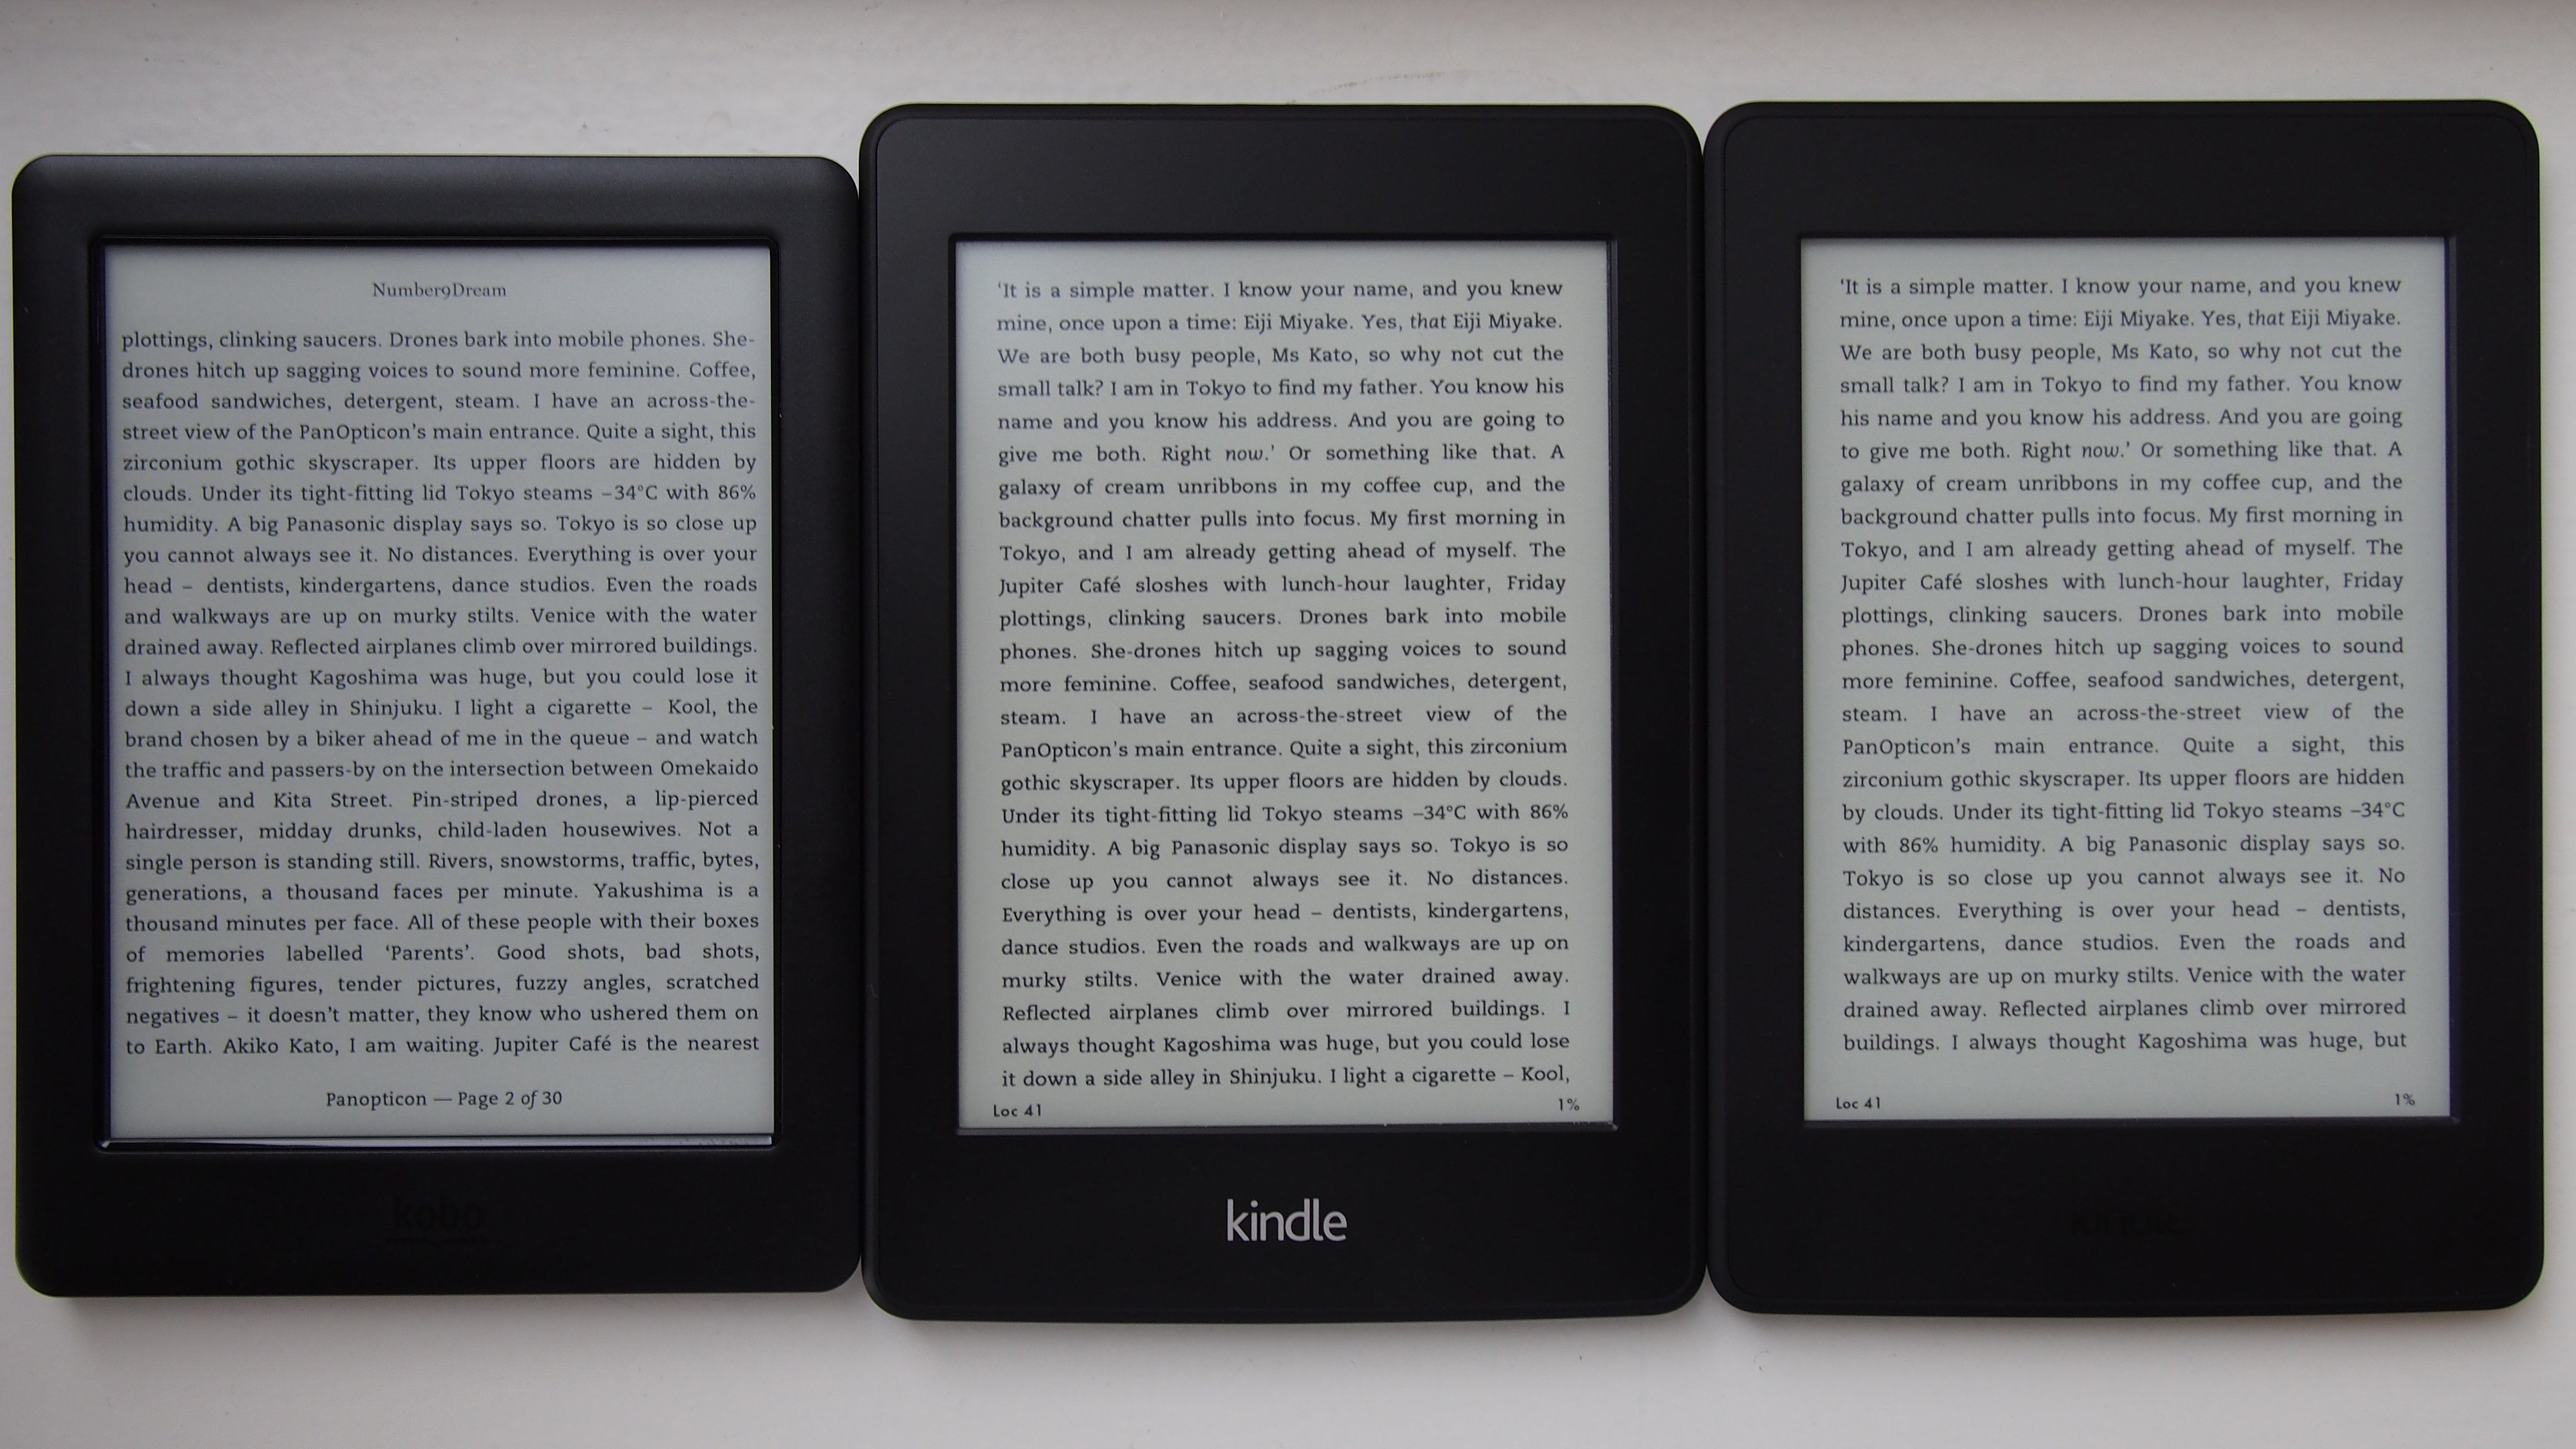 Amazon Kindle Lite app beta version Launched In India - photo#22